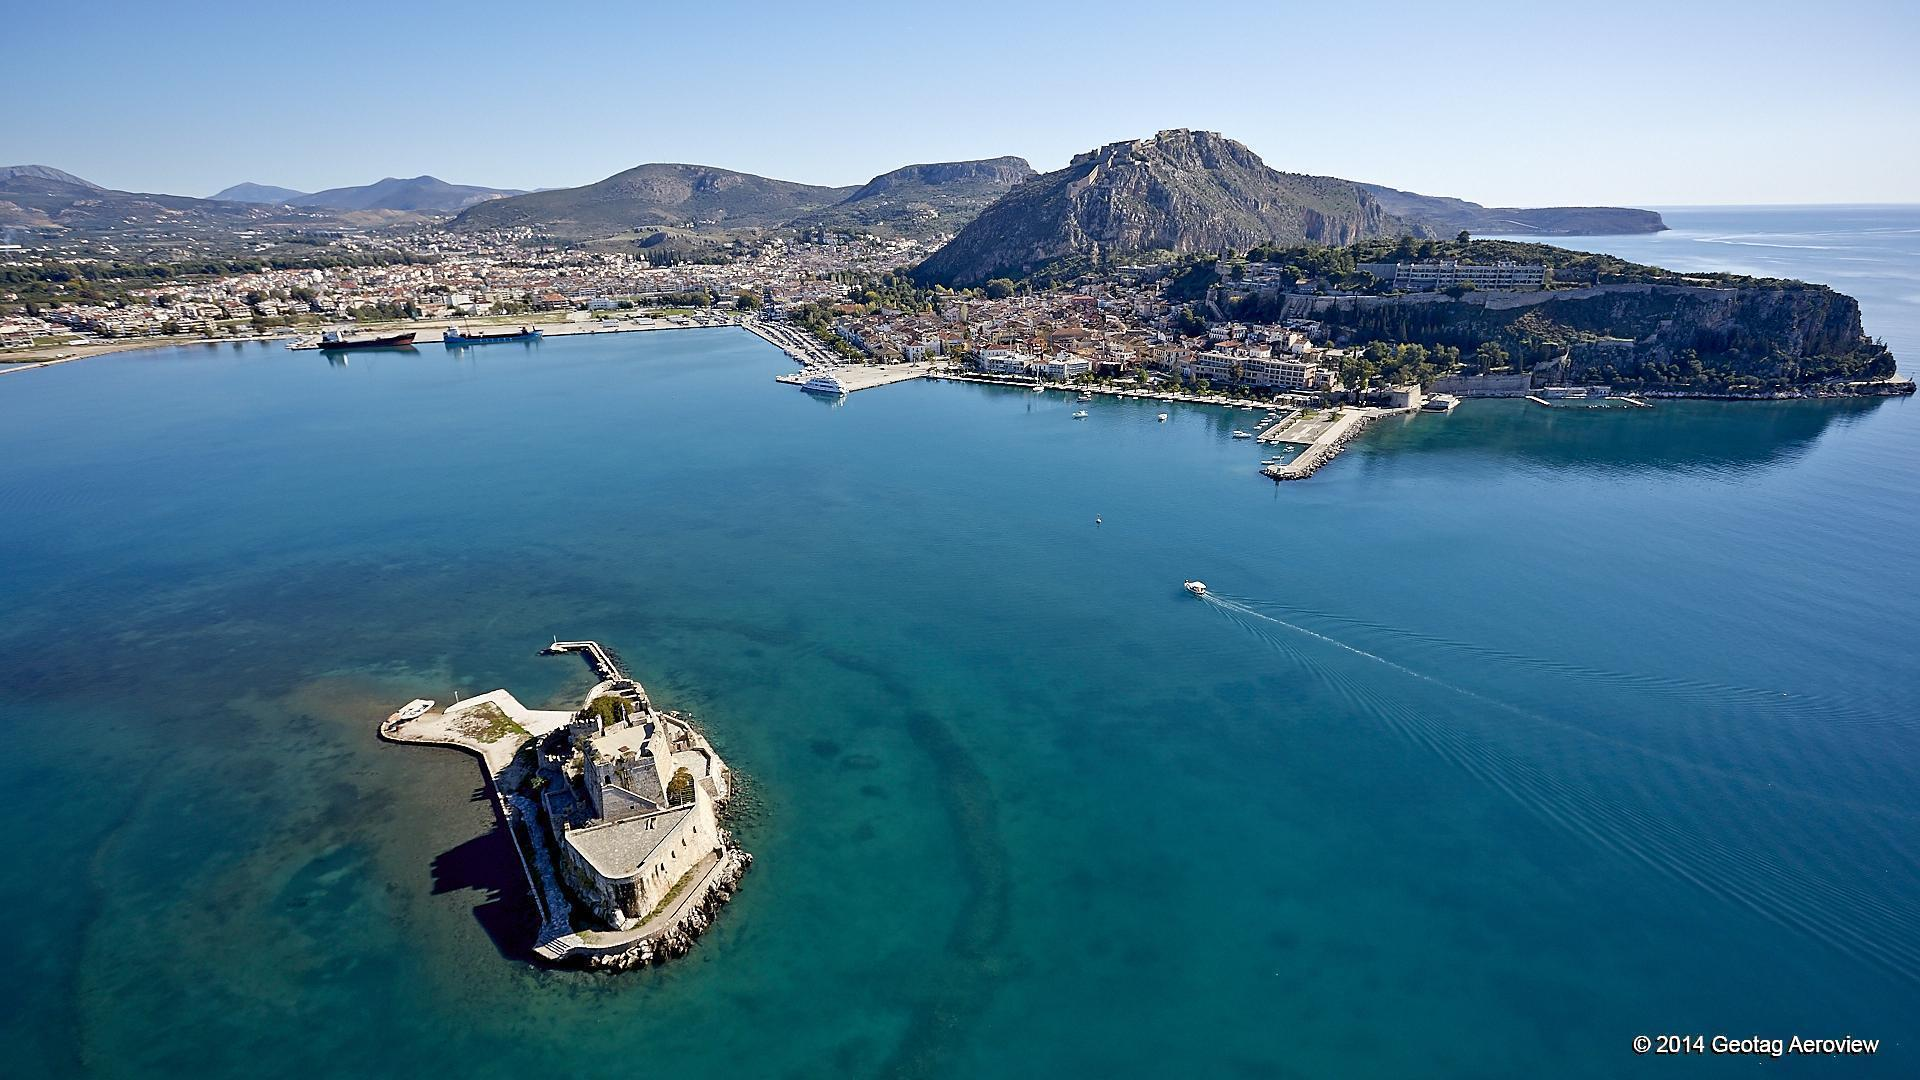 Nafplio! Lets meet there! - tripinVIEW Blog